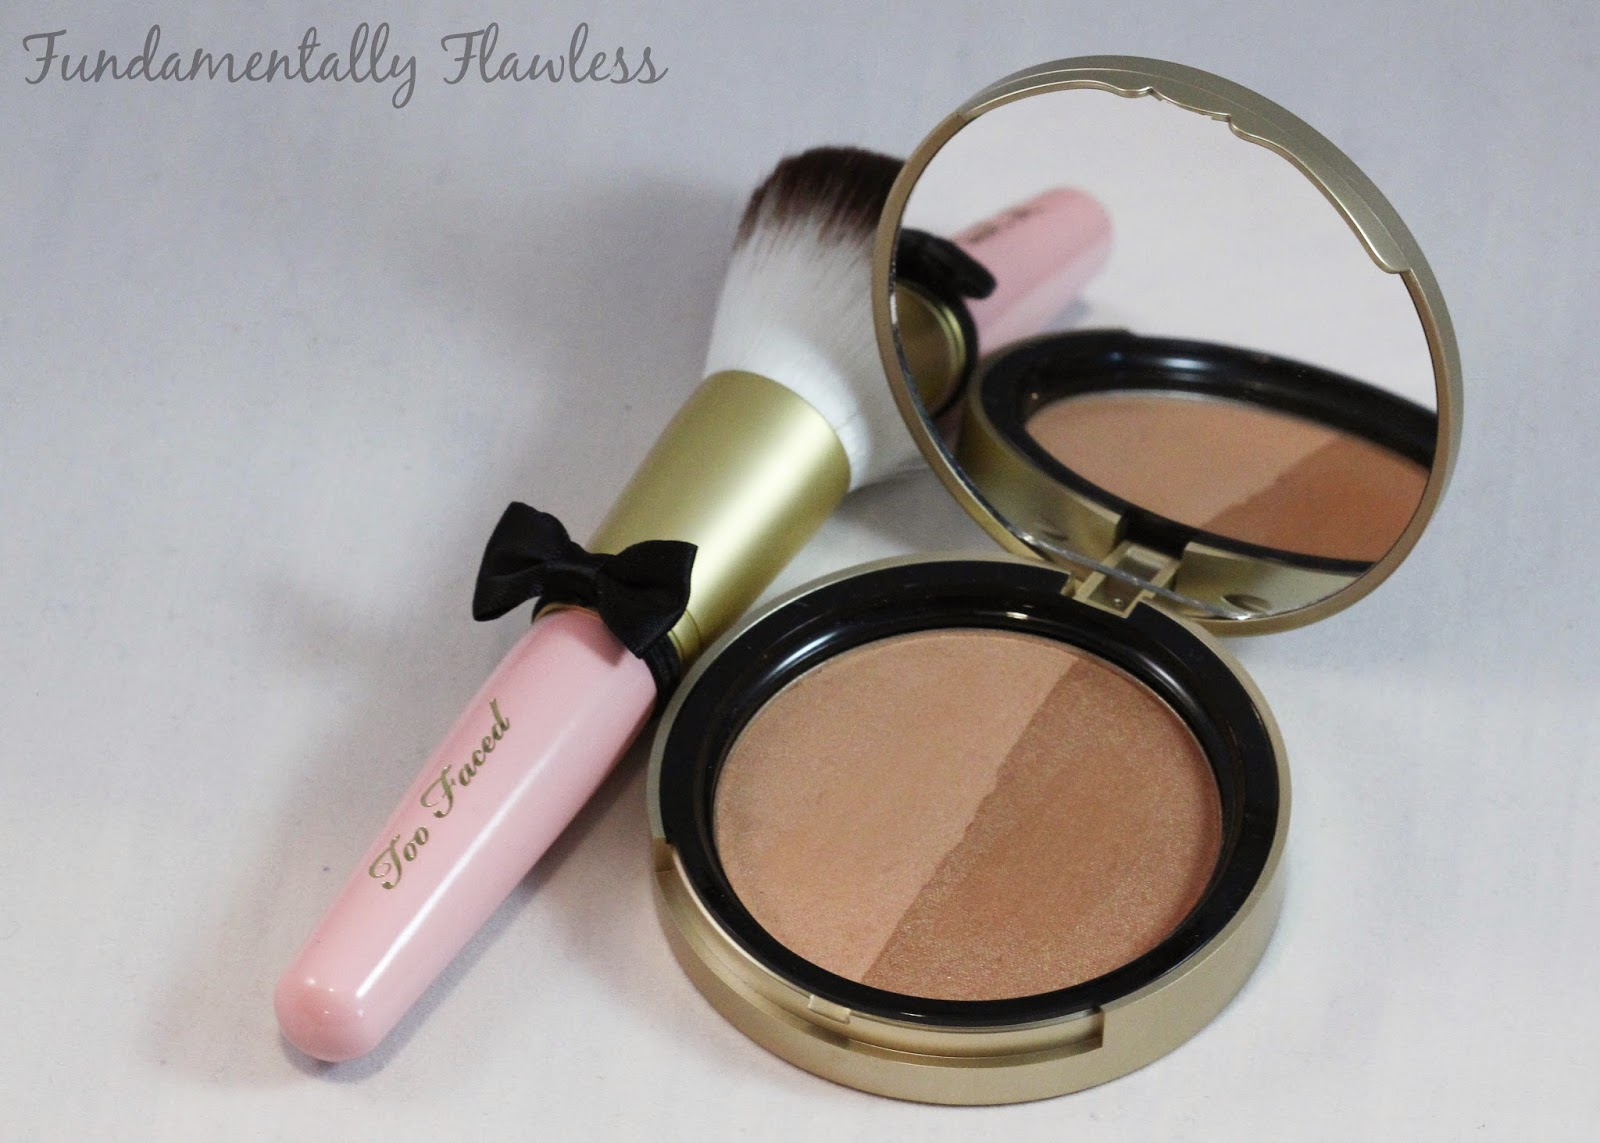 Too Faced Sun Bunny Bronzer and Powder Pouf Brush